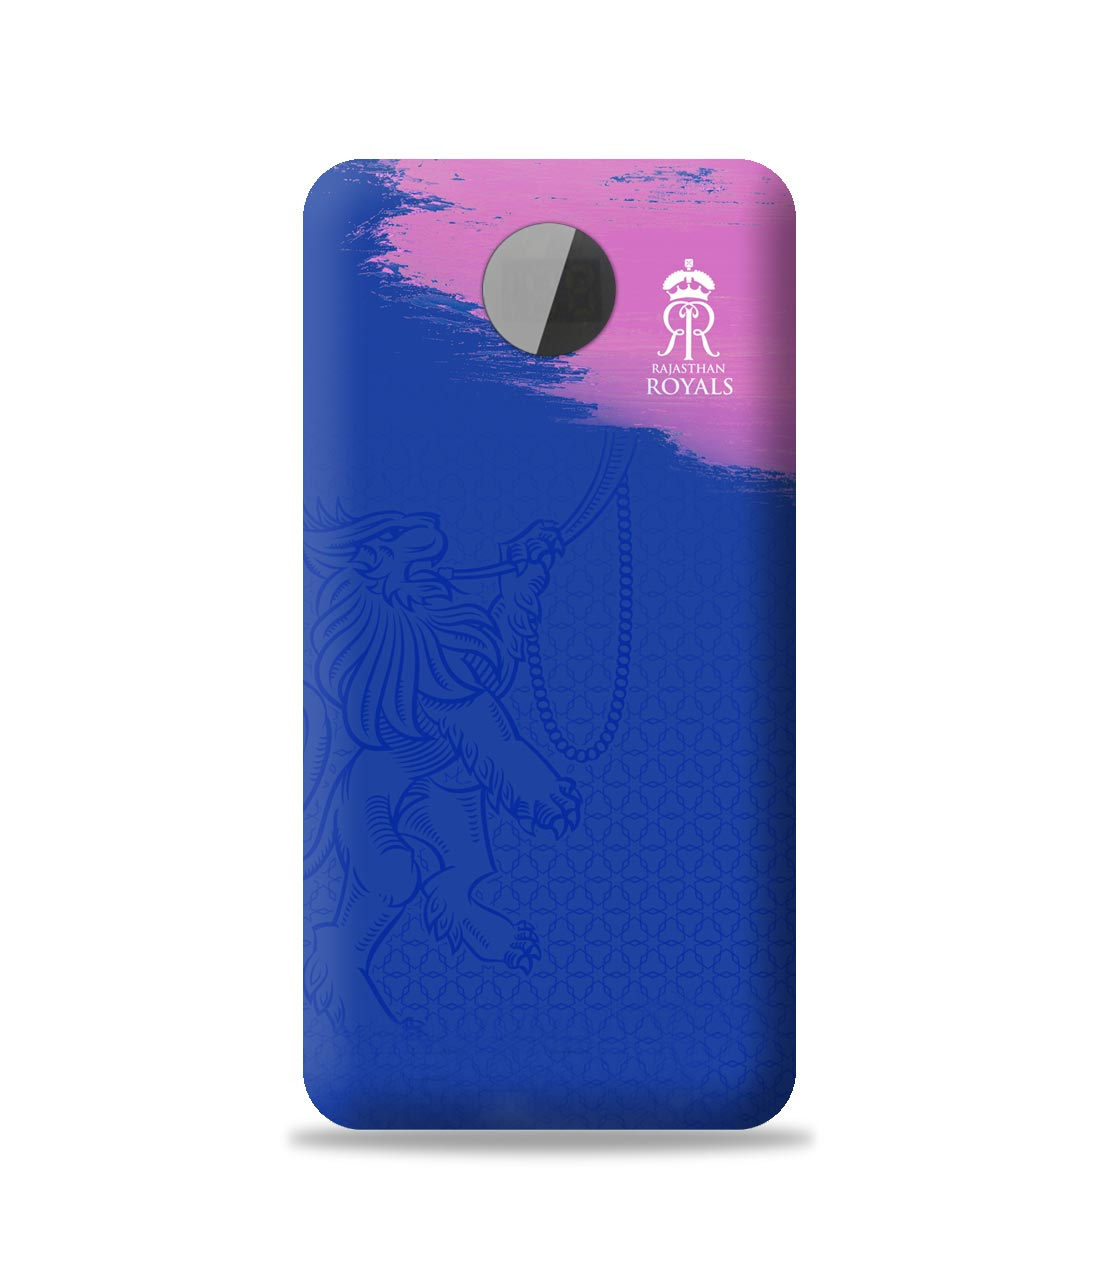 Rajasthan Royals Crest Blue - 10000 mAh Universal Power Bank